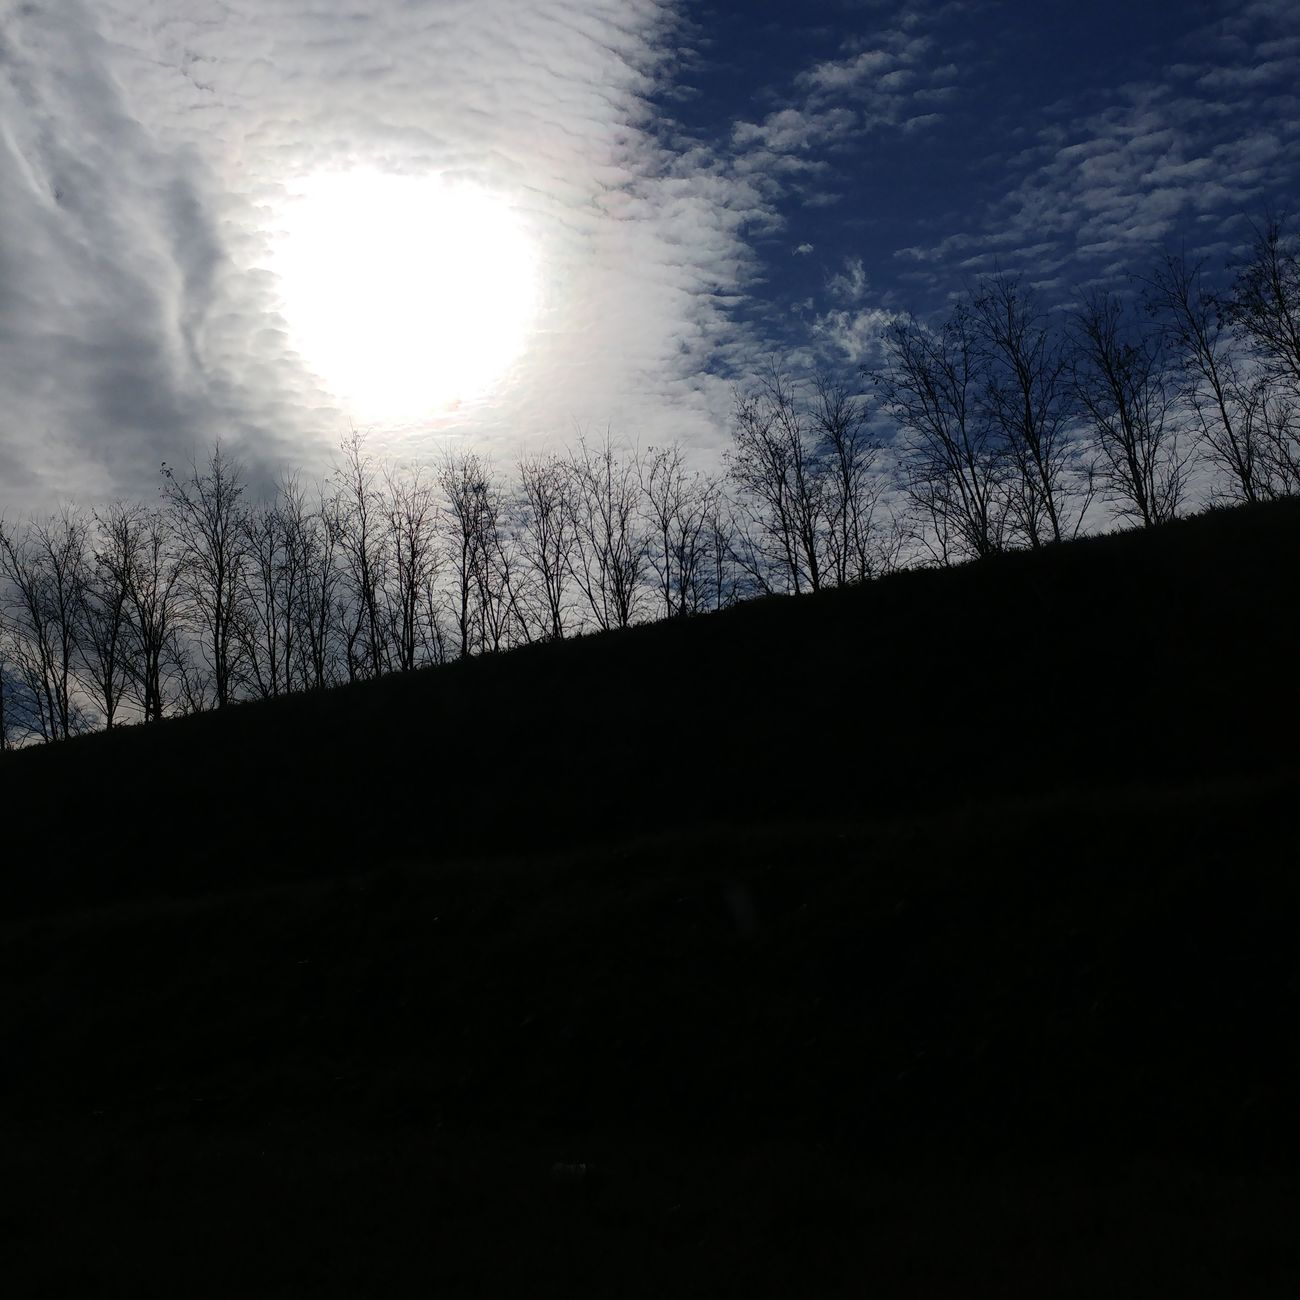 We live to be happy, not to be perfect. Capture Blue Sky White Clouds Bright Sun Trees Dark Roadtrip Inthecar Sunnyday Coldday Winter Trees Winter Landscape Viewfrommycar View Beauty In Nature Nature Mood Photosoftheday All_shots Toscana